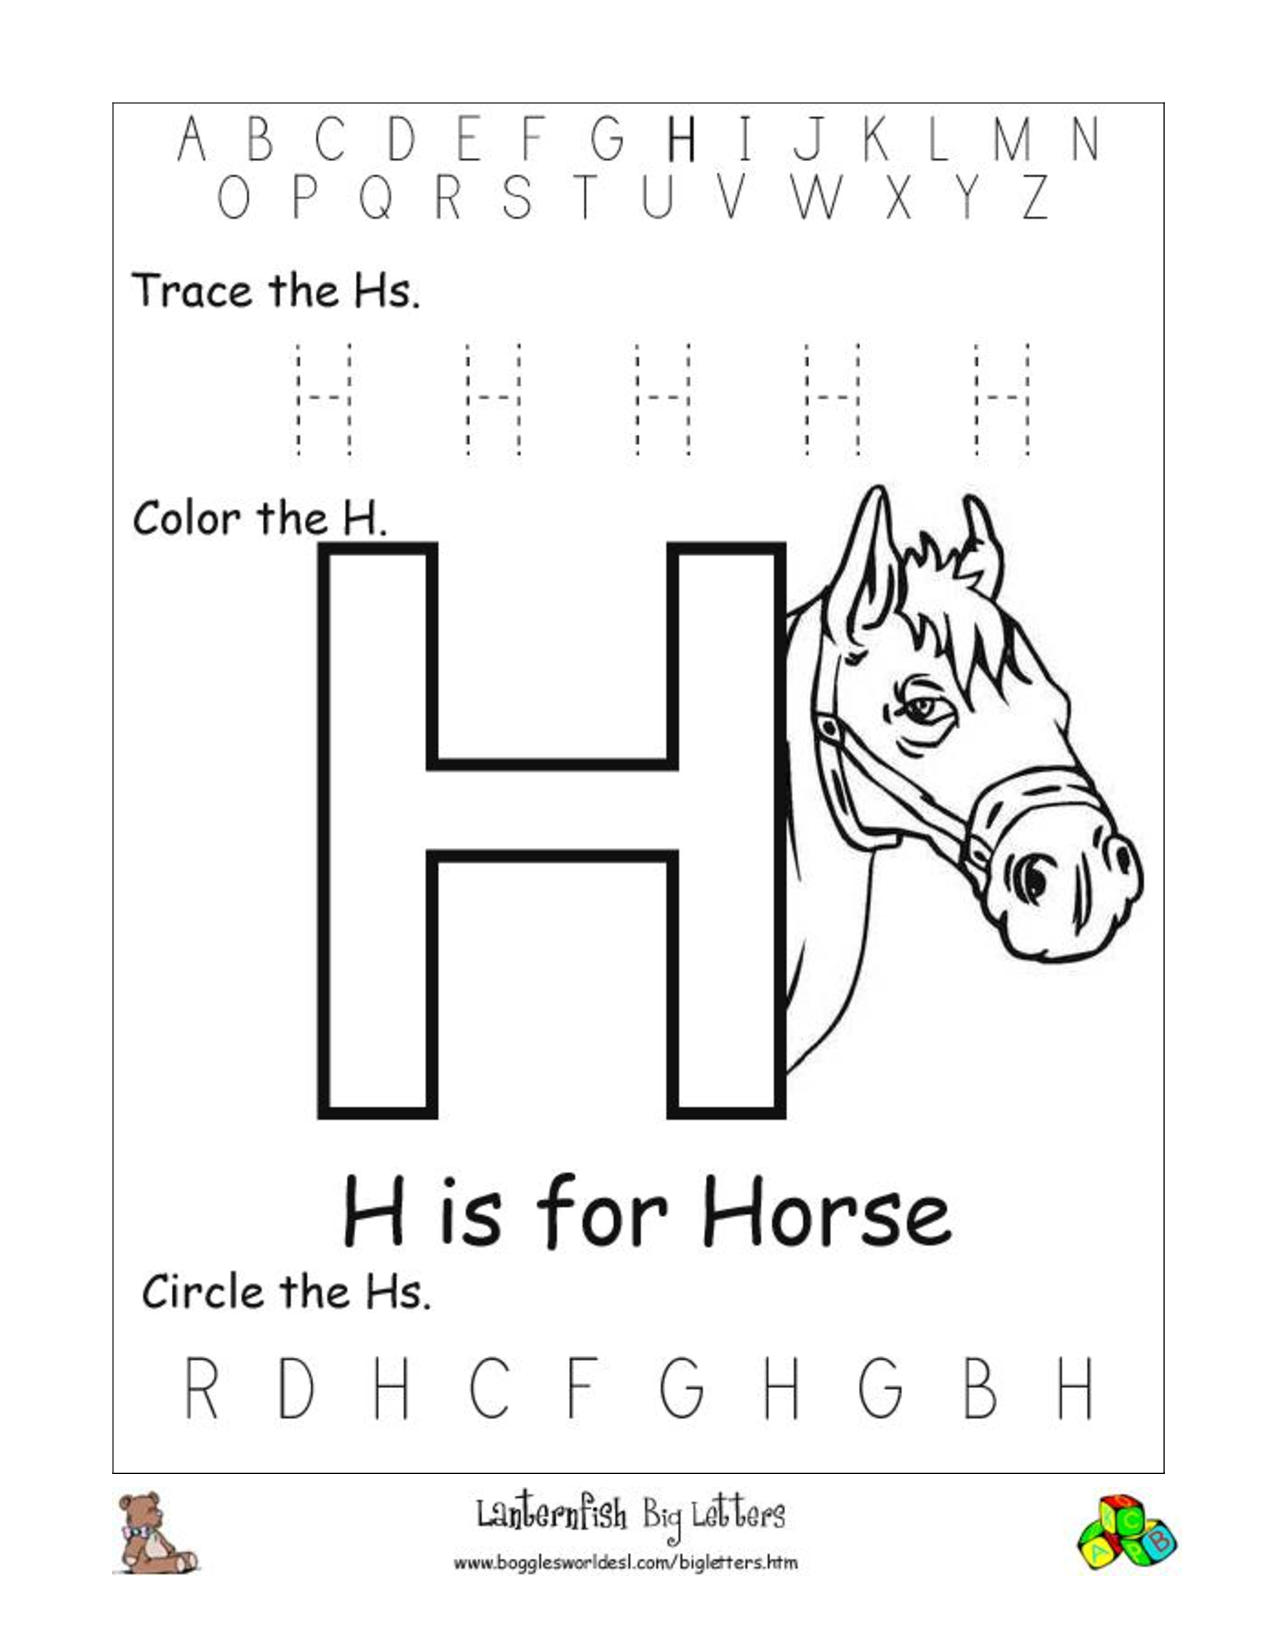 Alphabet Worksheets for Preschoolers activities